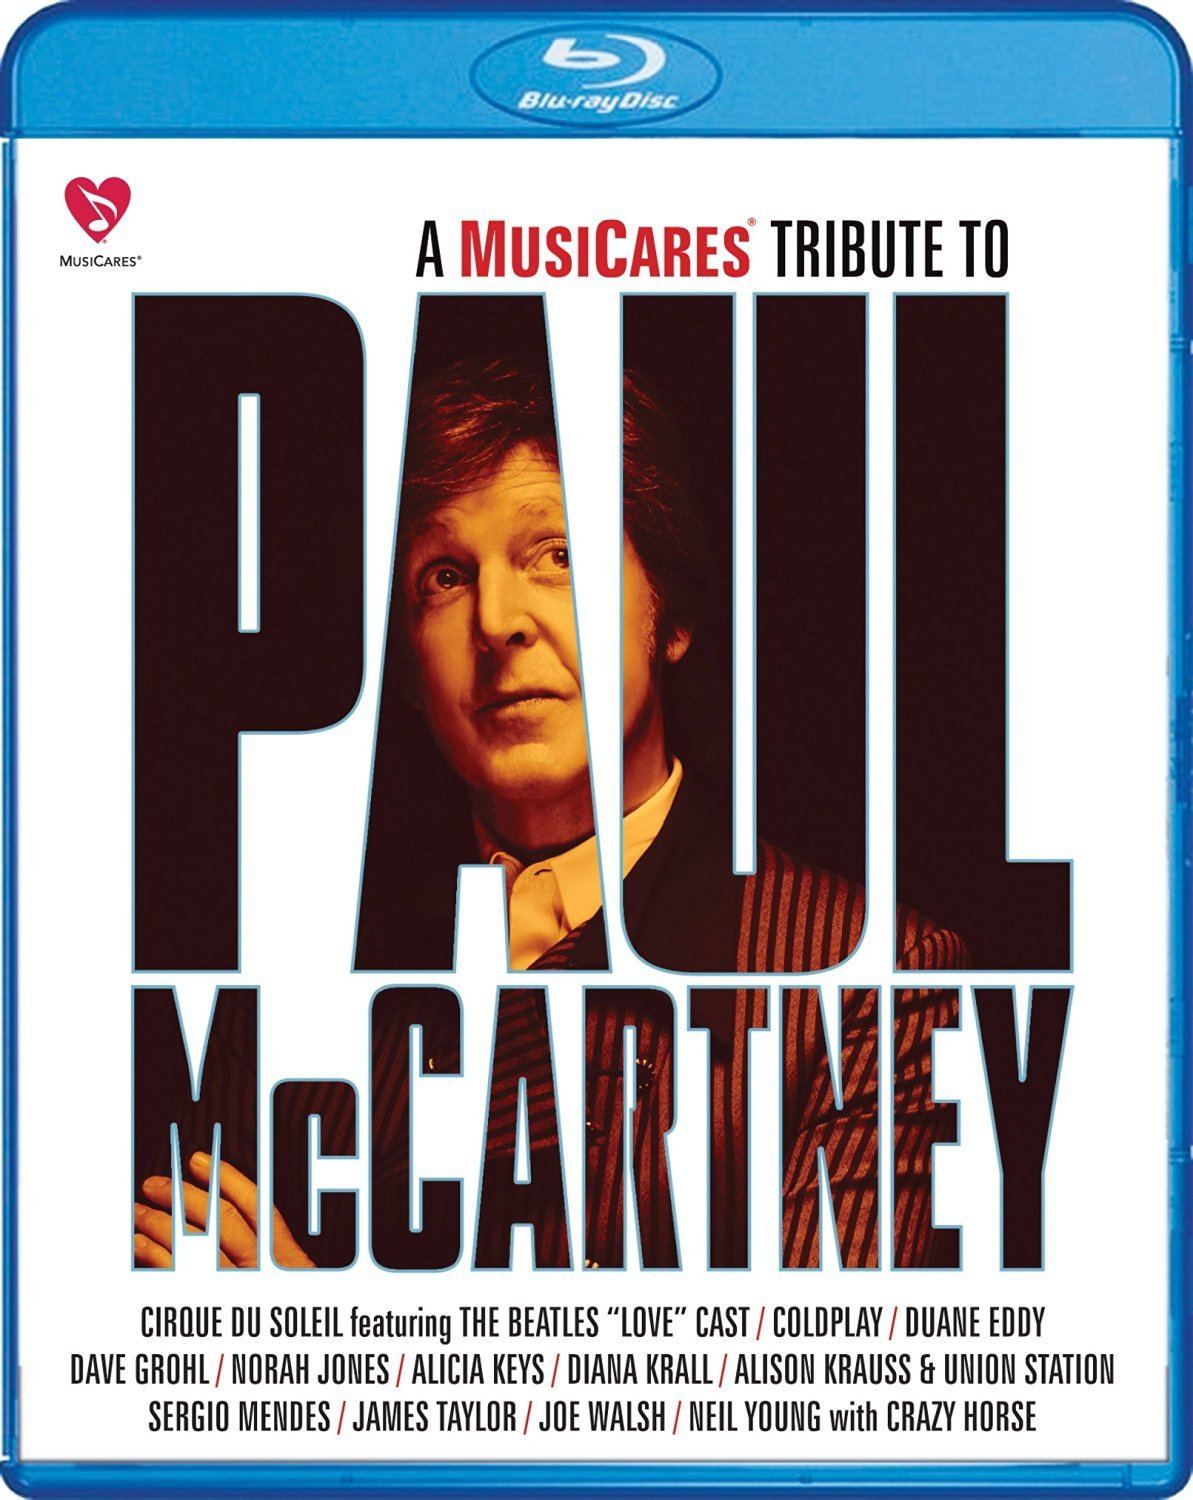 A MusiCares Tribute to Paul McCartney (Blu-ray, 2015)